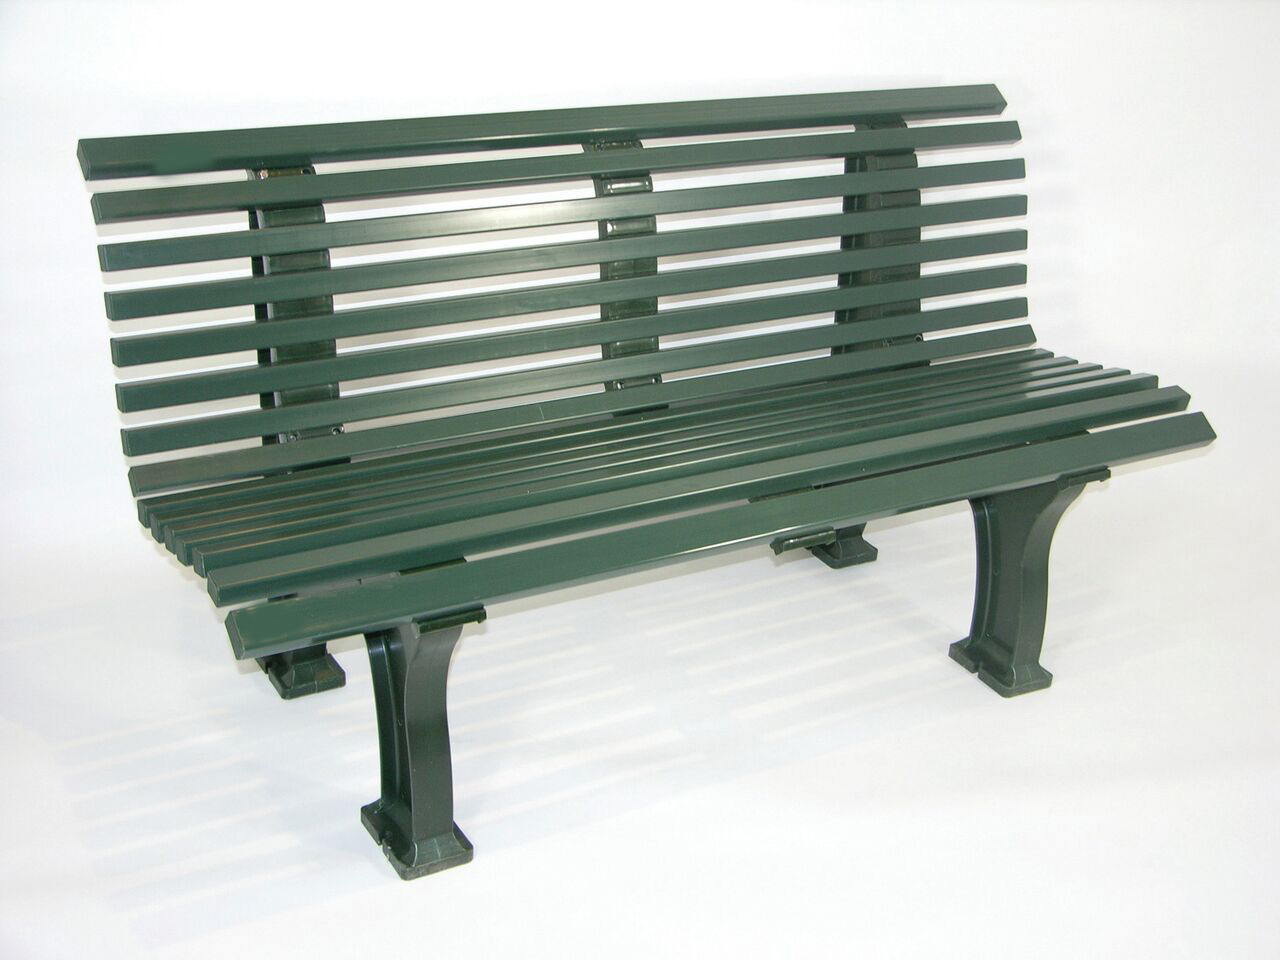 5' Deluxe Courtside Tennis Bench